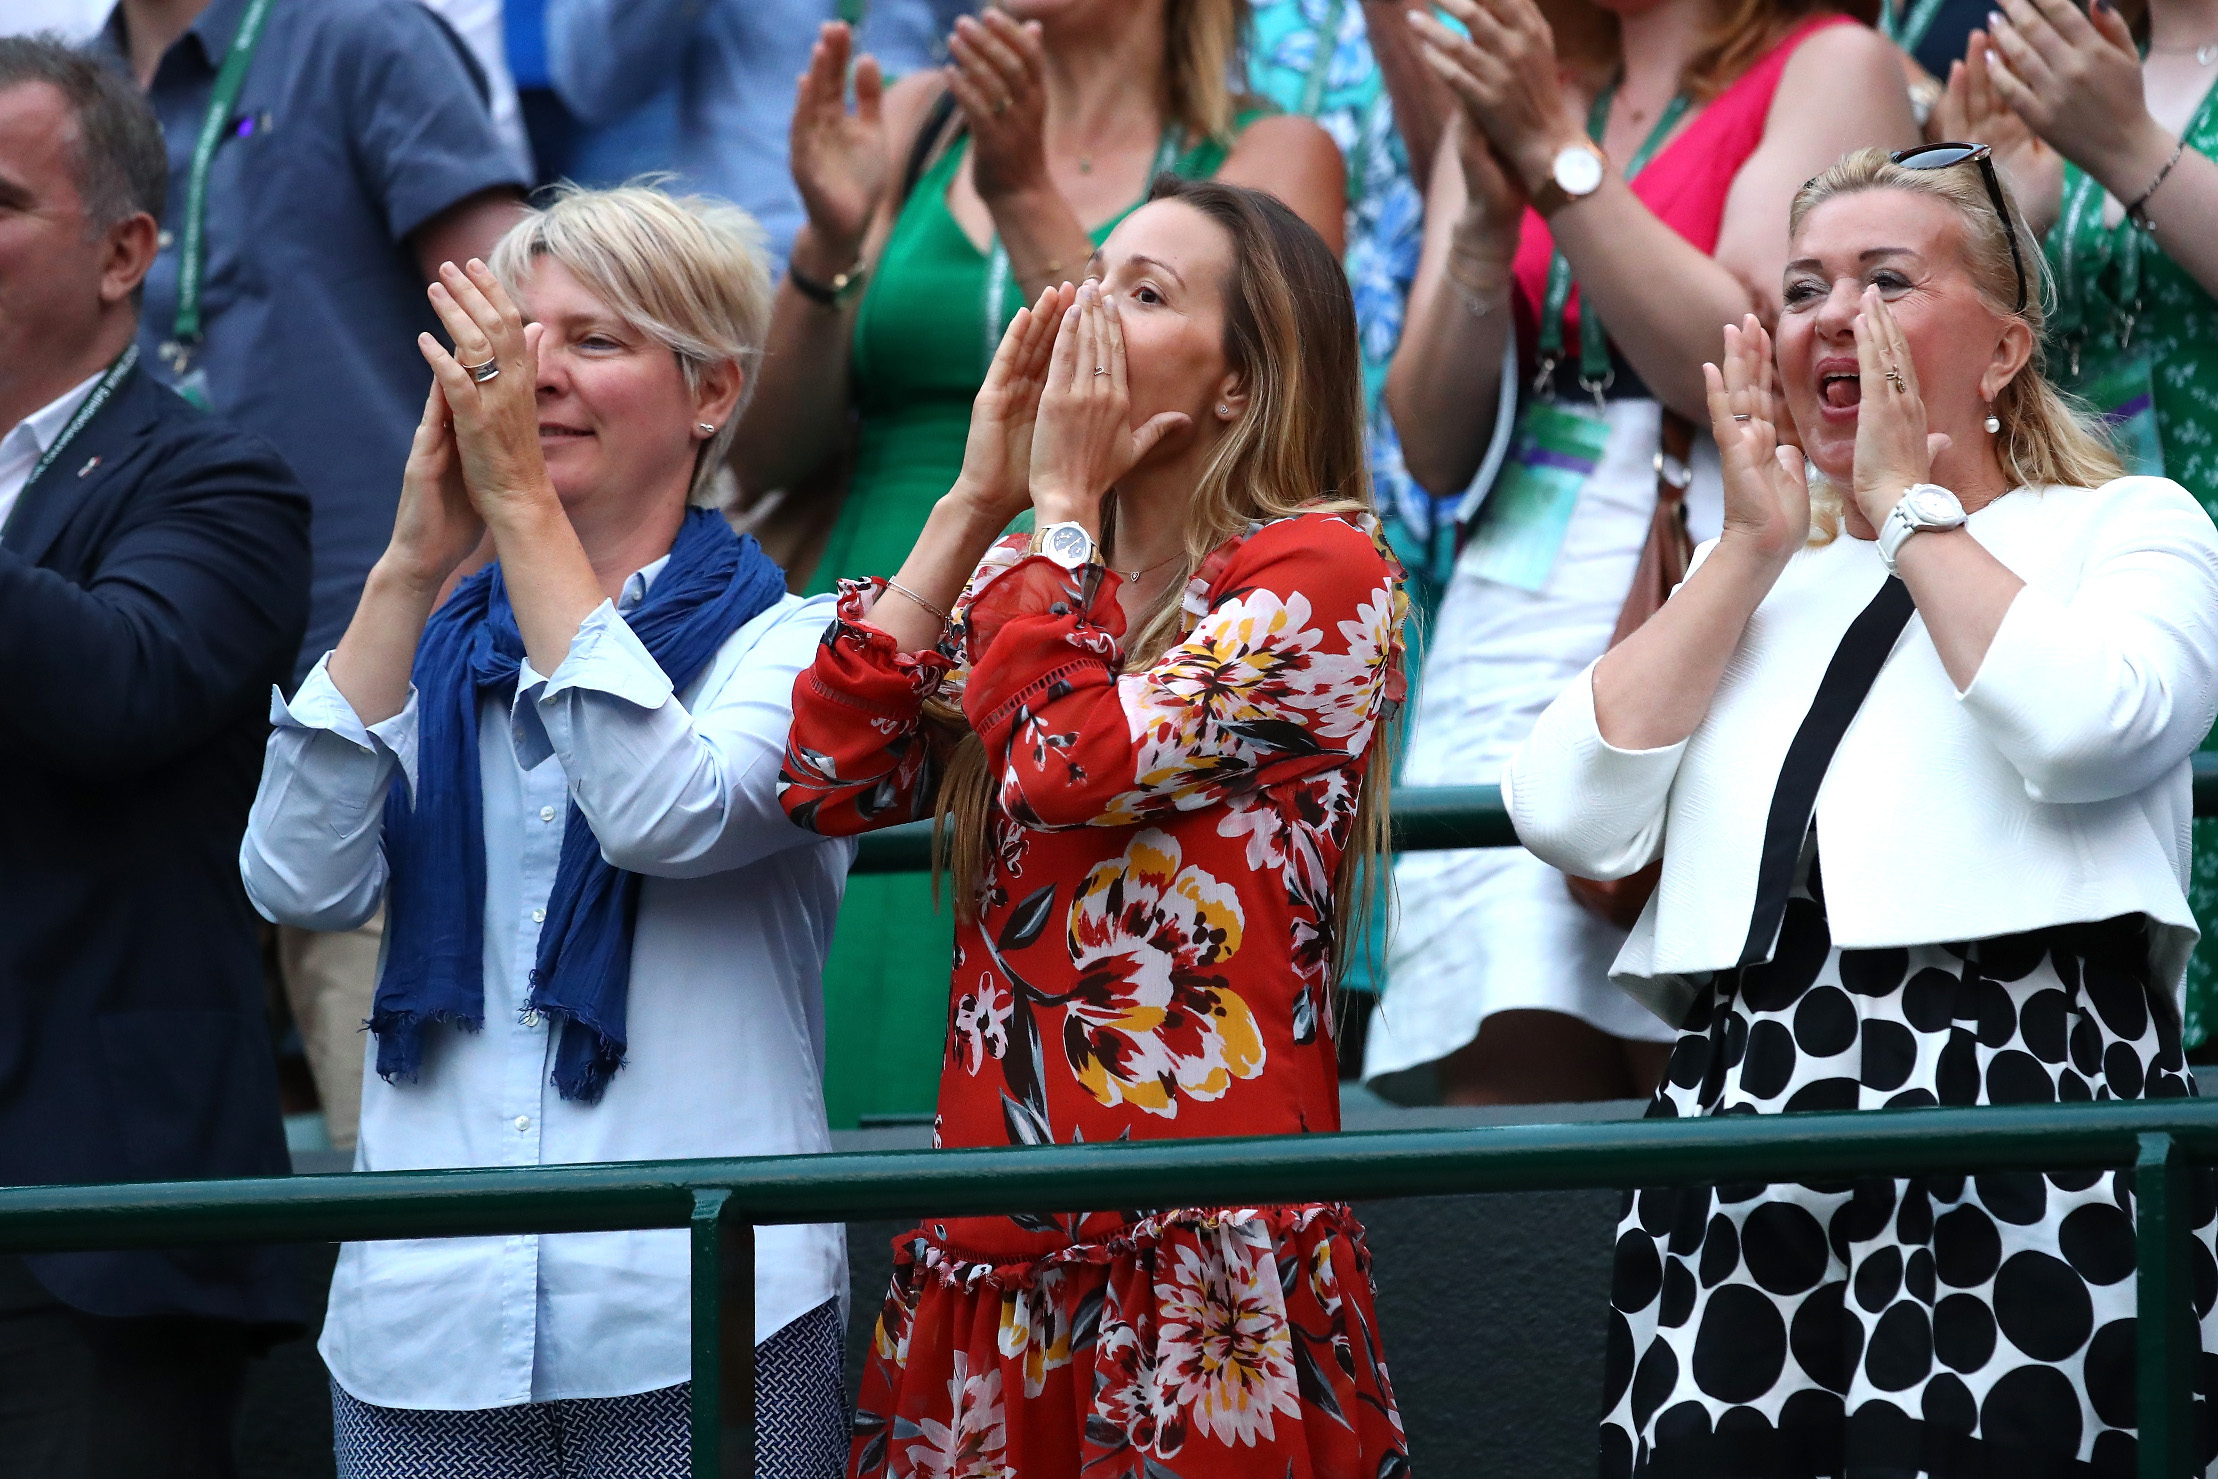 LONDON, ENGLAND - JULY 09:  Jelena Dokovic (C), wife of Novak Djokovic of Serbia, celebrates her husband's victory in the Men's Singles fourth round on day seven of the Wimbledon Lawn Tennis Championships at All England Lawn Tennis and Croquet Club on July 9, 2018 in London, England.  (Photo by Clive Brunskill/Getty Images)